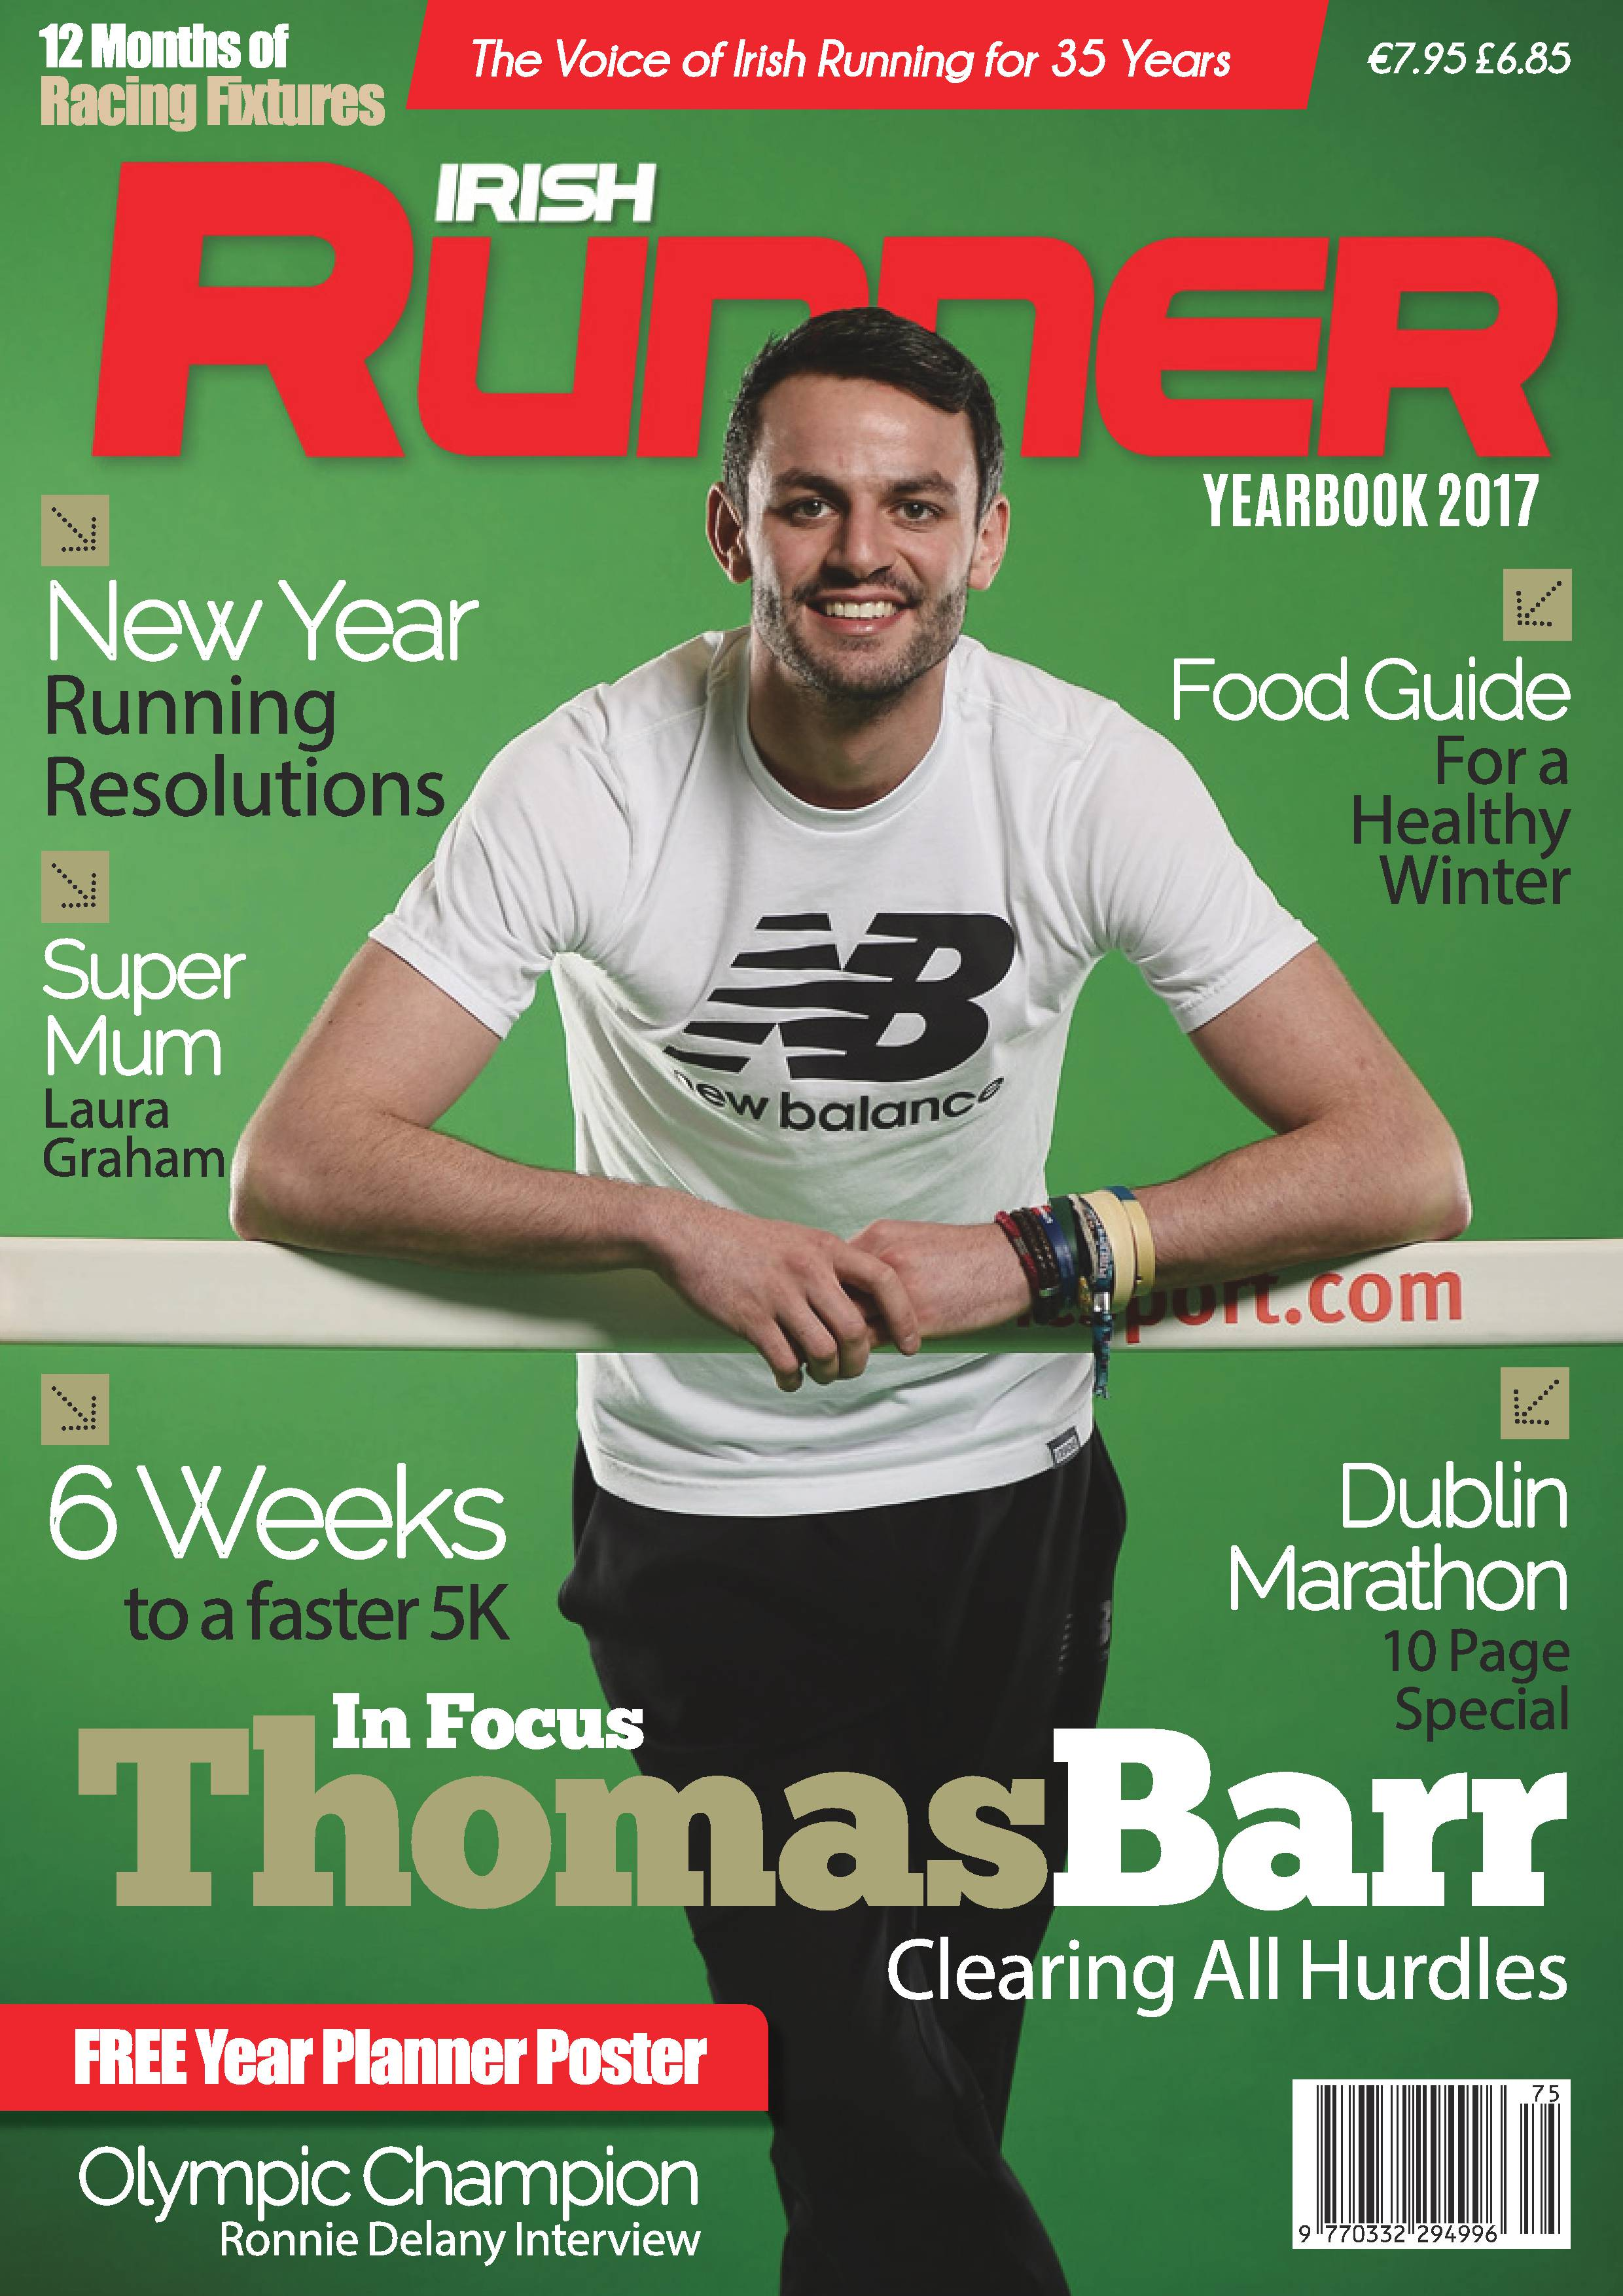 Irish Runner Yearbook